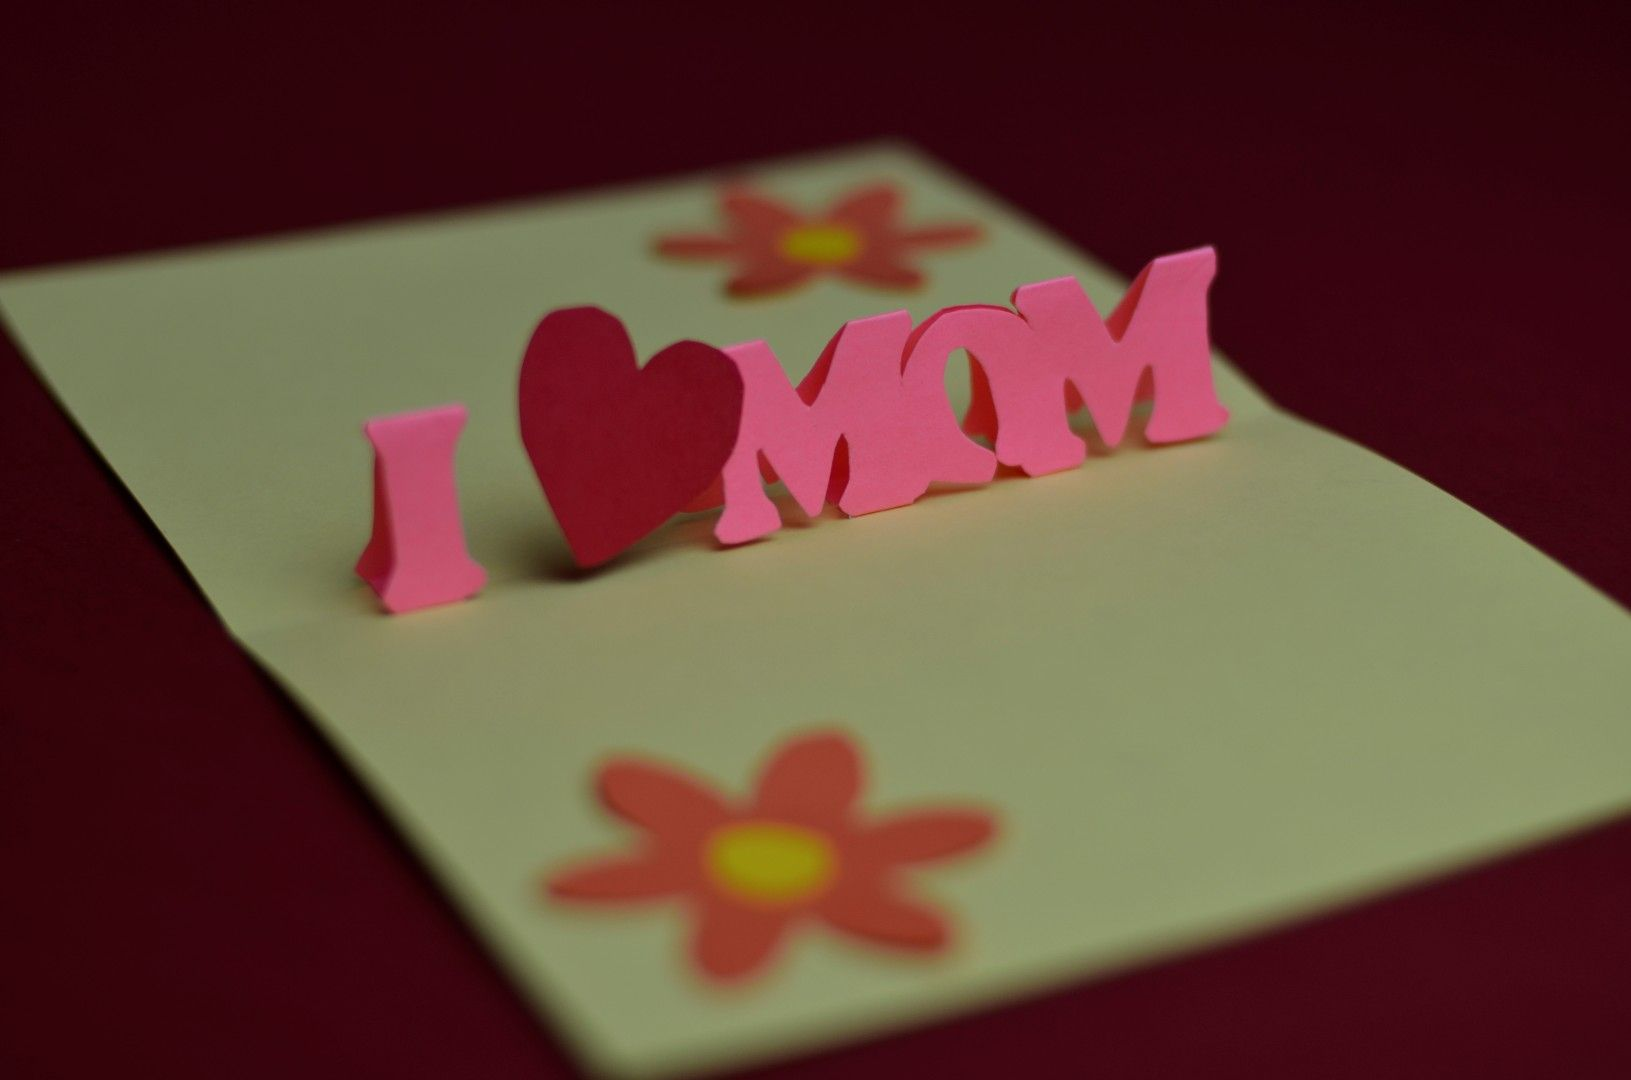 Simple Mother S Day Pop Up Card Template Creative Pop Up Cards In 3d Heart Pop Up Card Templat Pop Up Card Templates Heart Pop Up Card Pop Up Valentine Cards